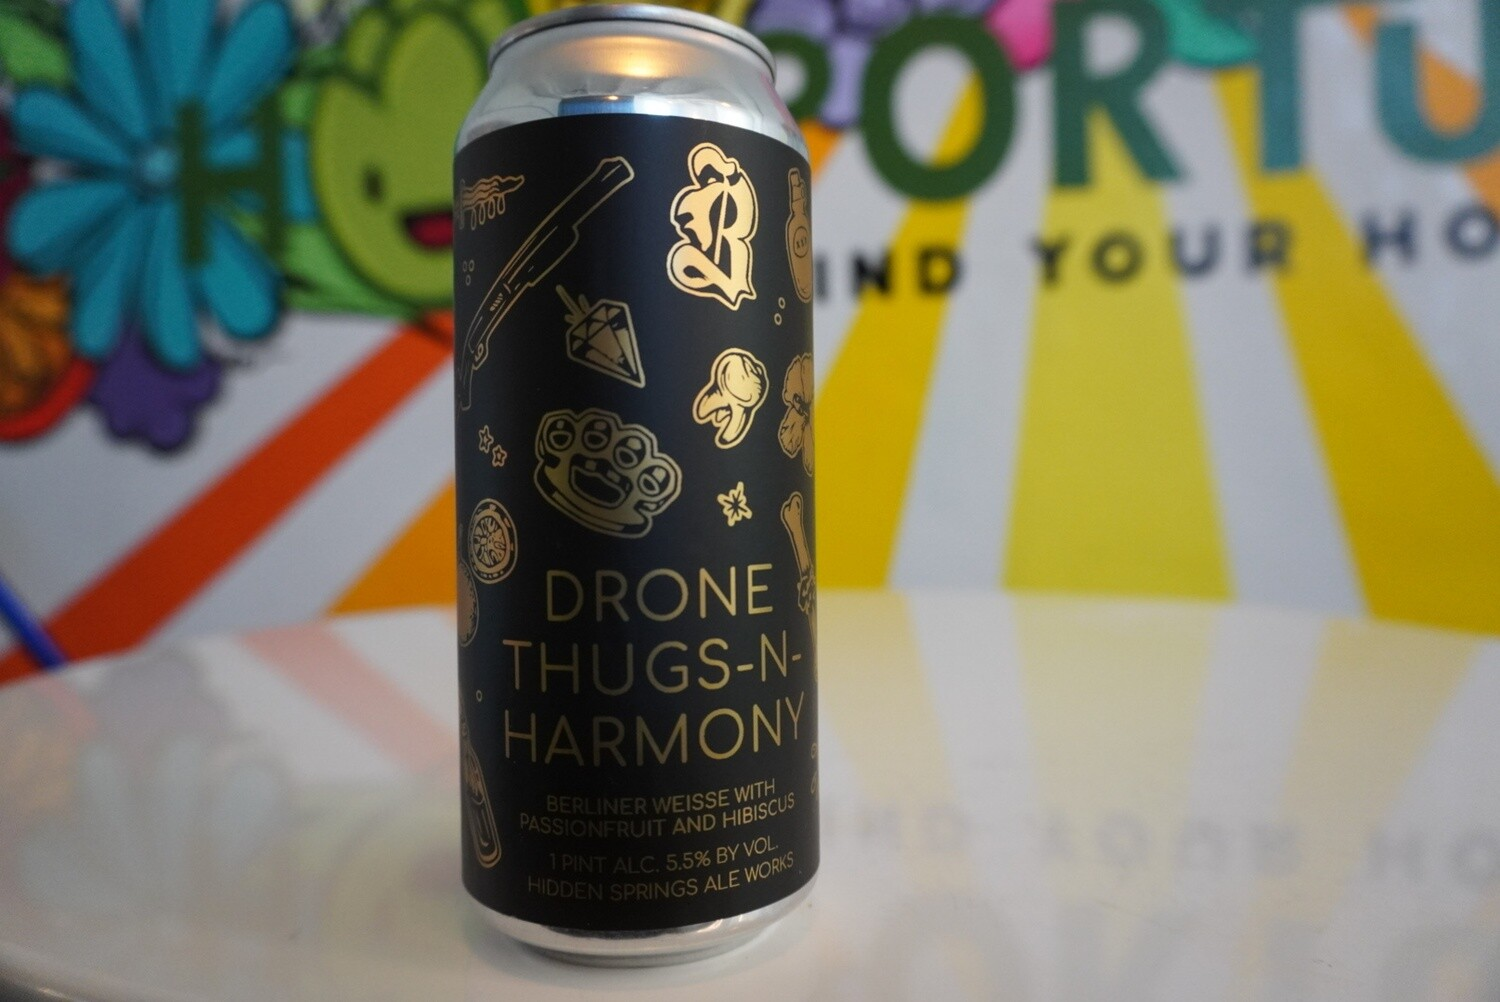 Hidden Springs Ale Works - Drone Thugs-N-Harmony - Sour - 5.5% ABV - 16oz Can